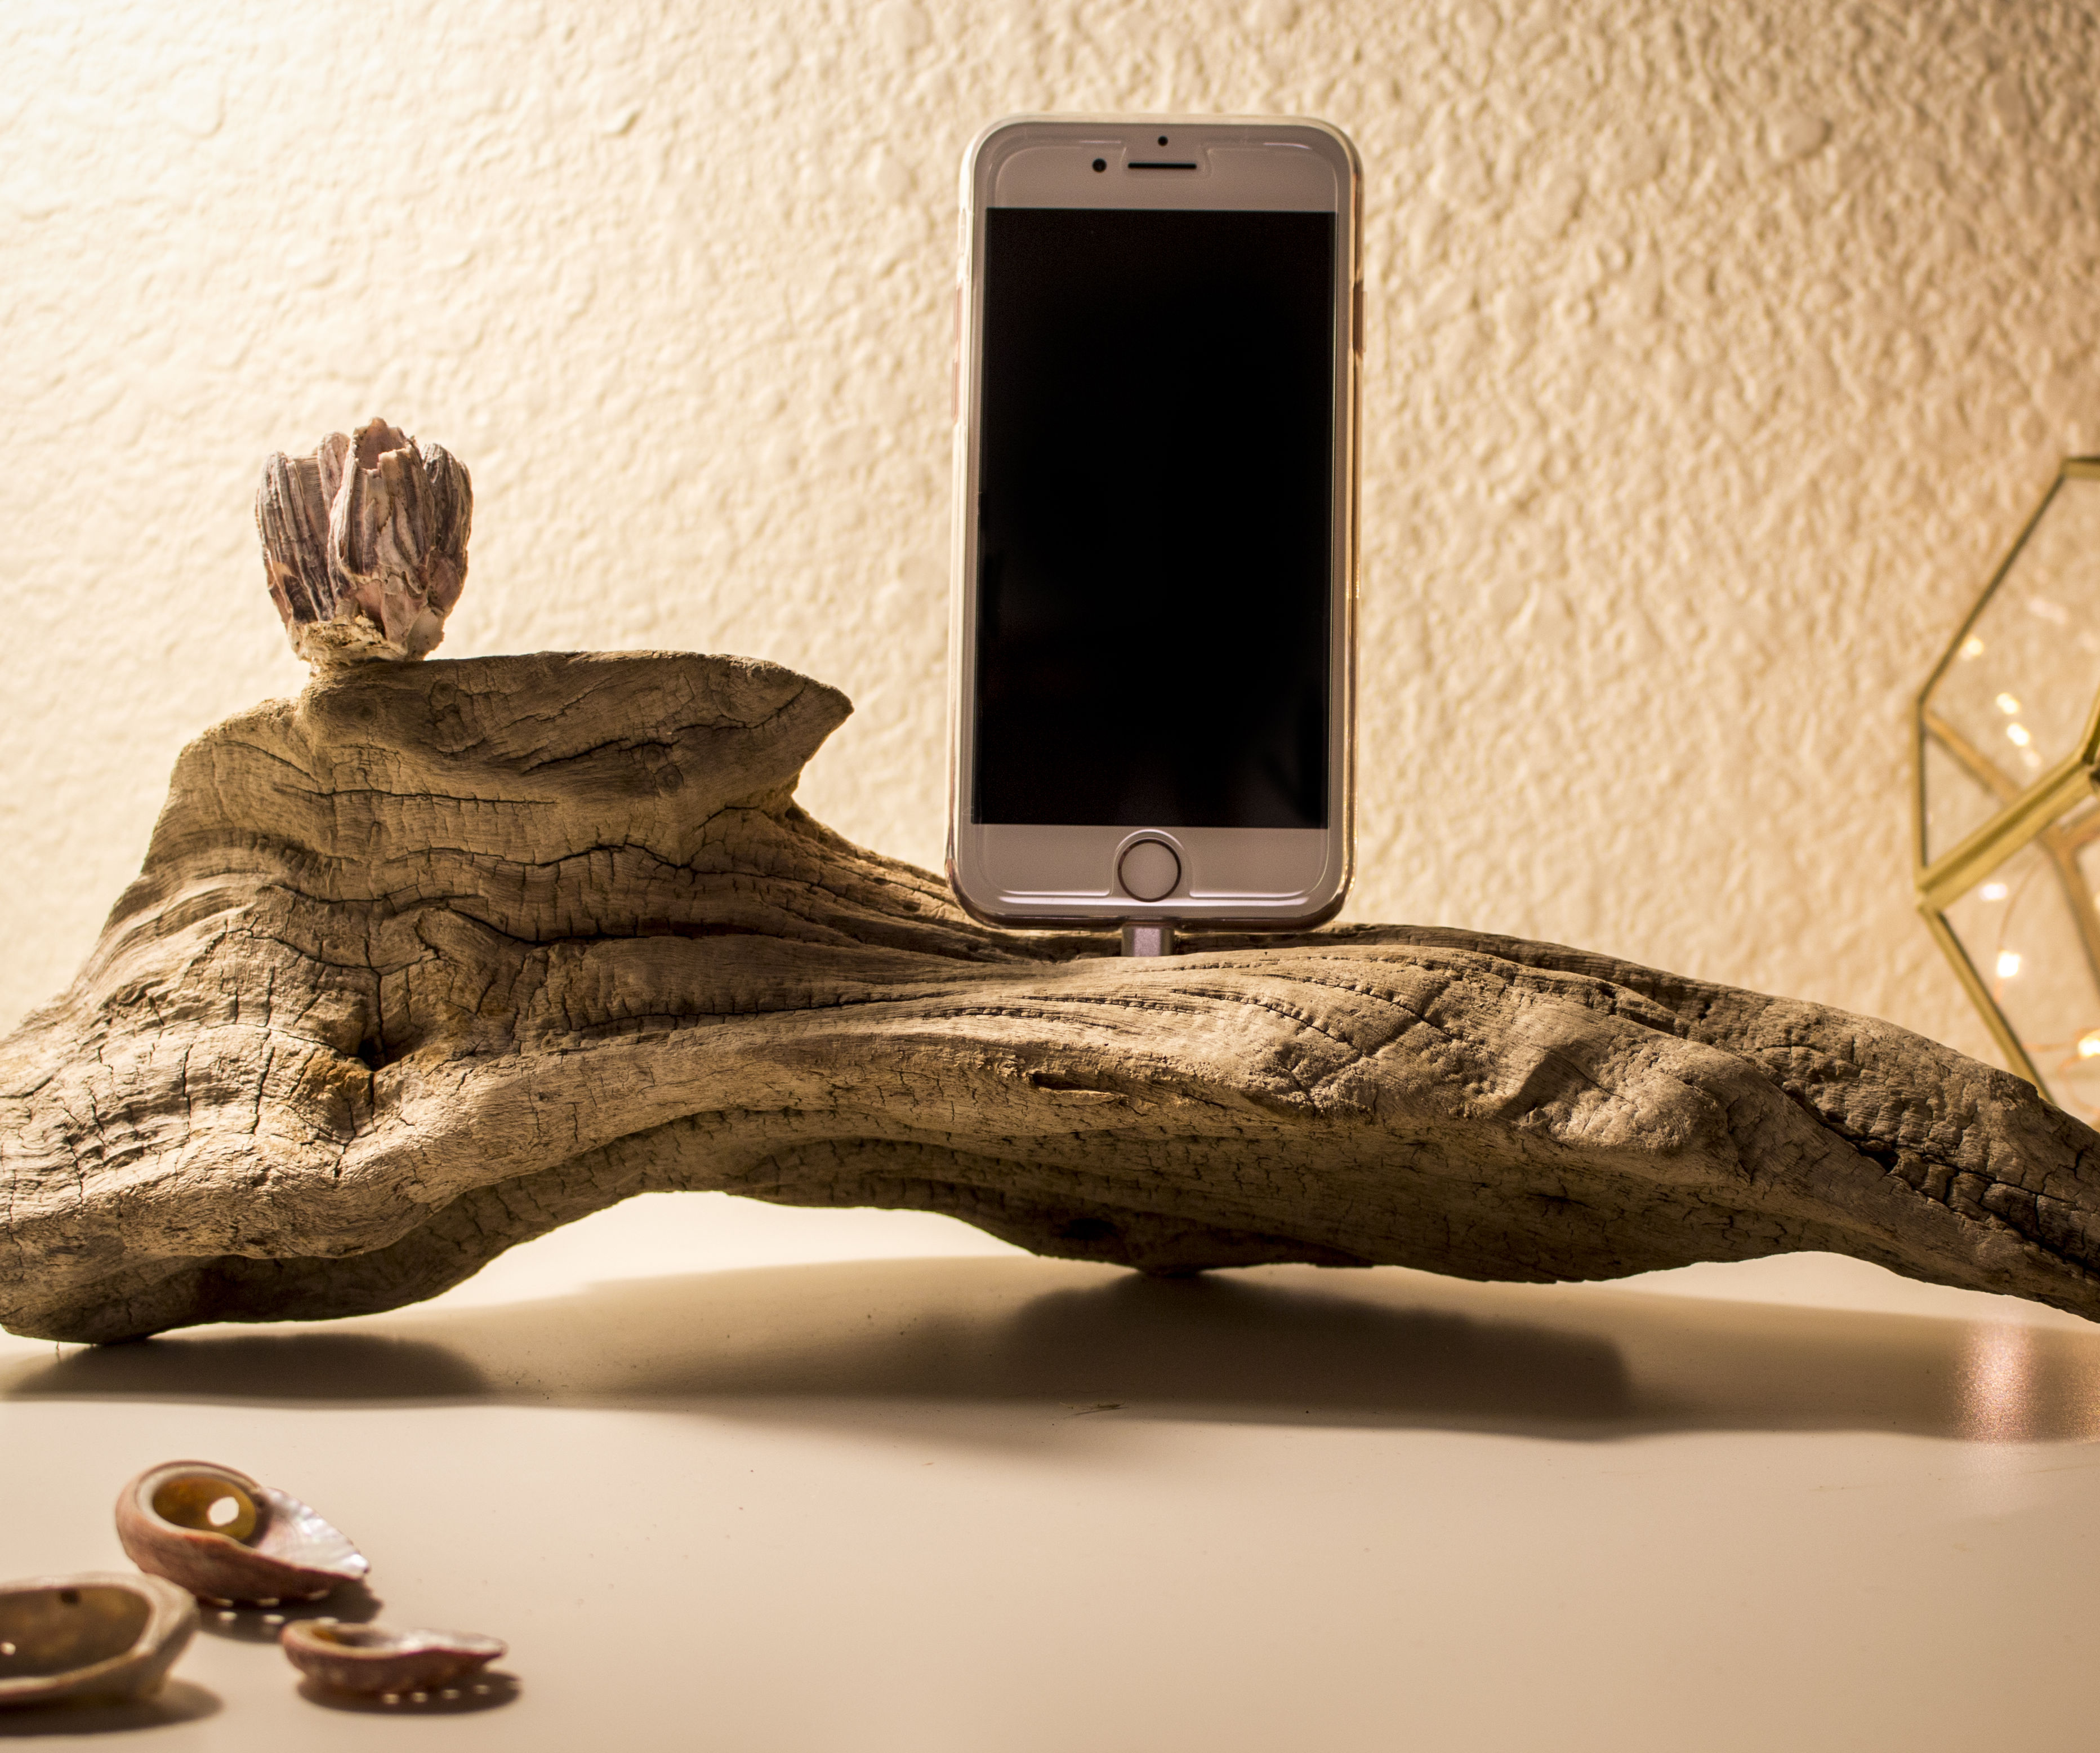 Driftwood IPhone Charger